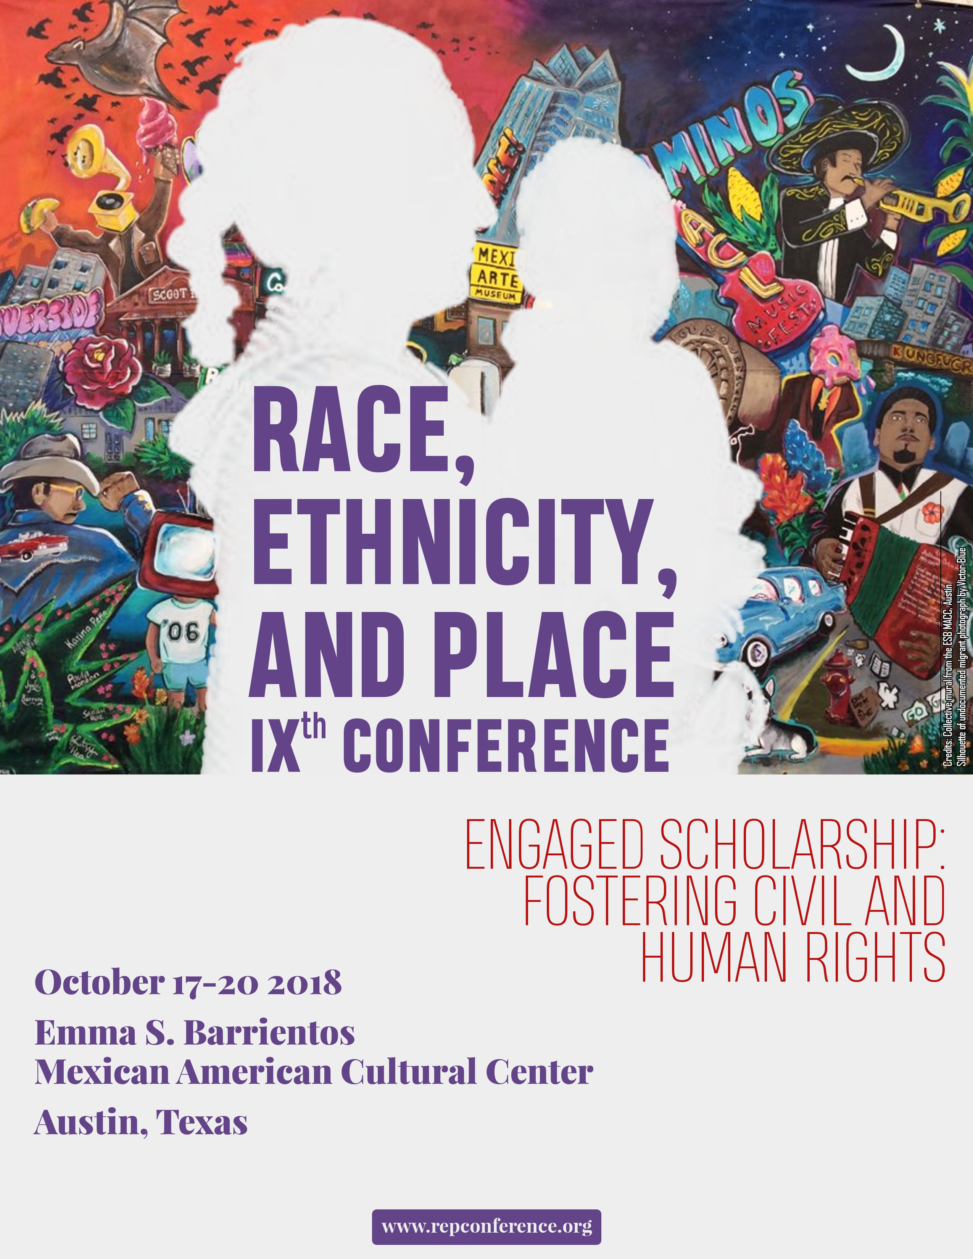 Poster of the IXth REP Conference